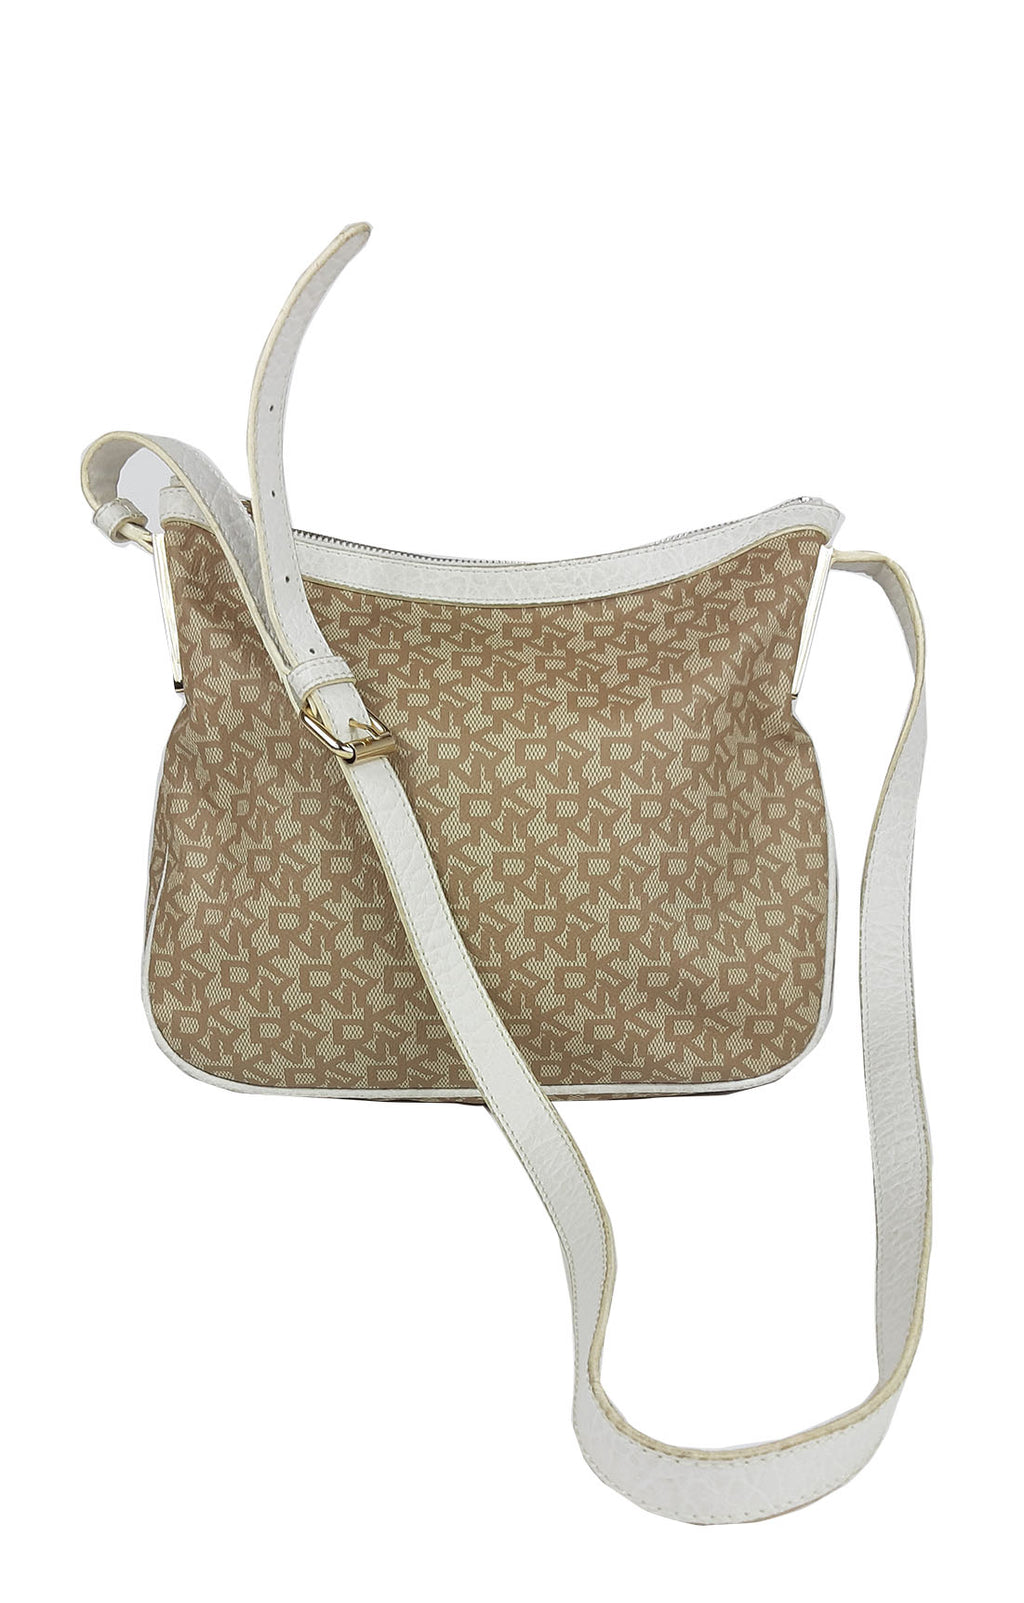 DKNY Logo Motif Crossbody Bag in Beige and White and  Gold-toned Hardware